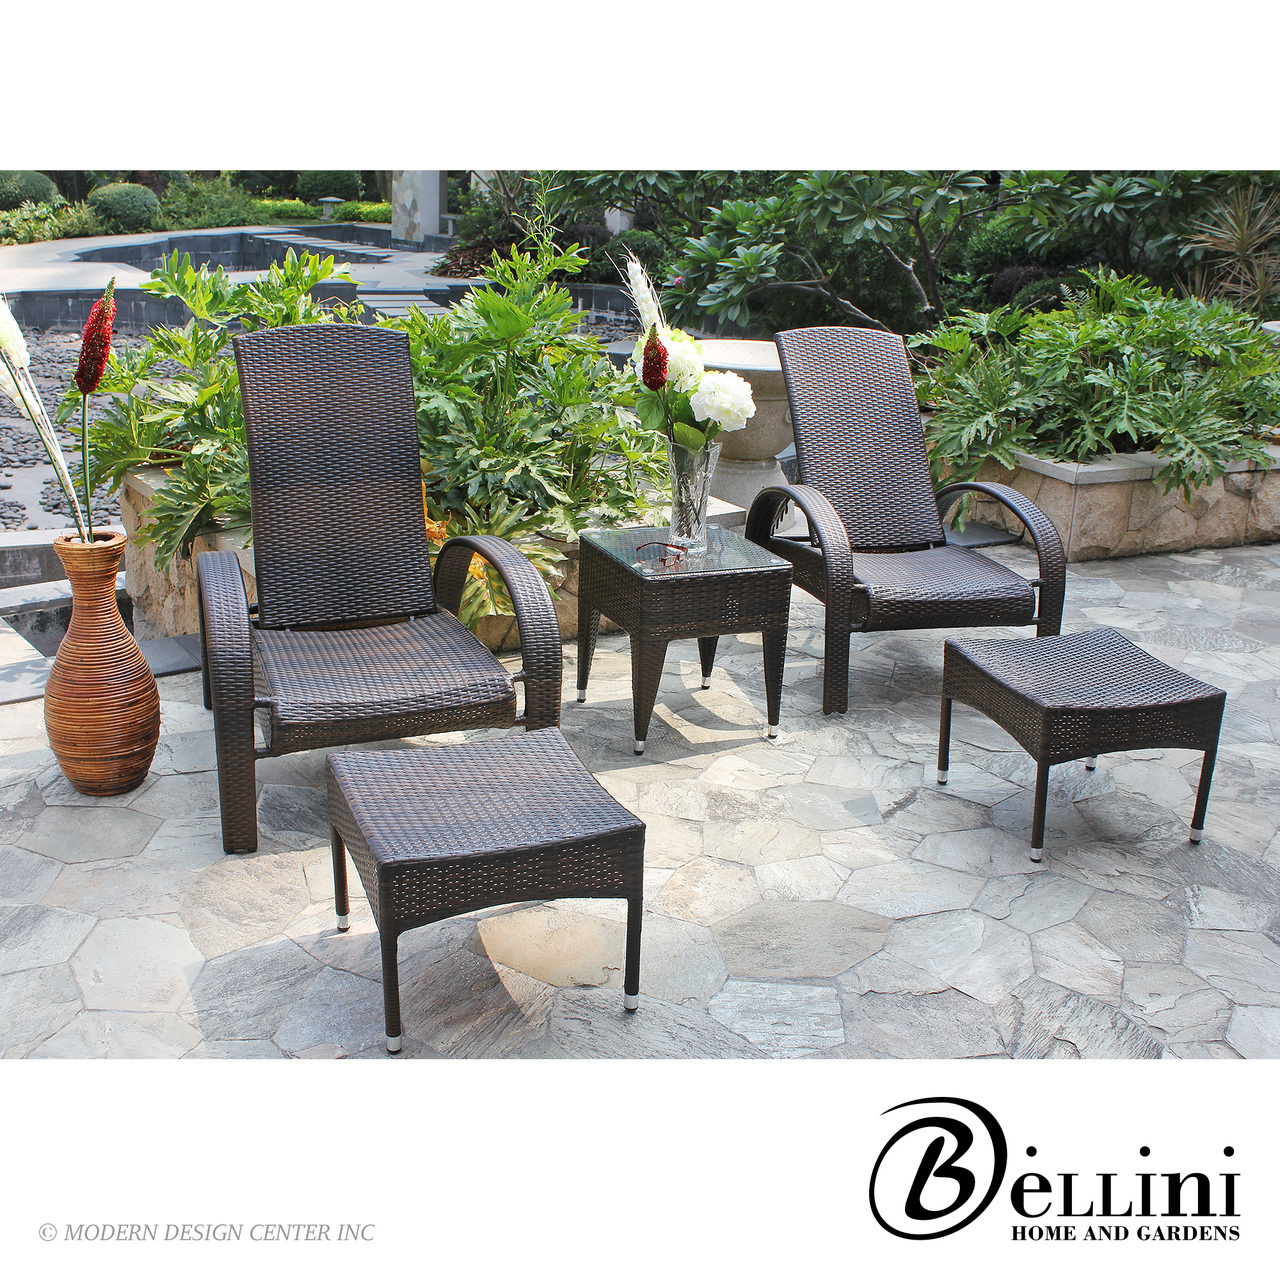 Azul 5-piece Chat Set W64105 | Bellini